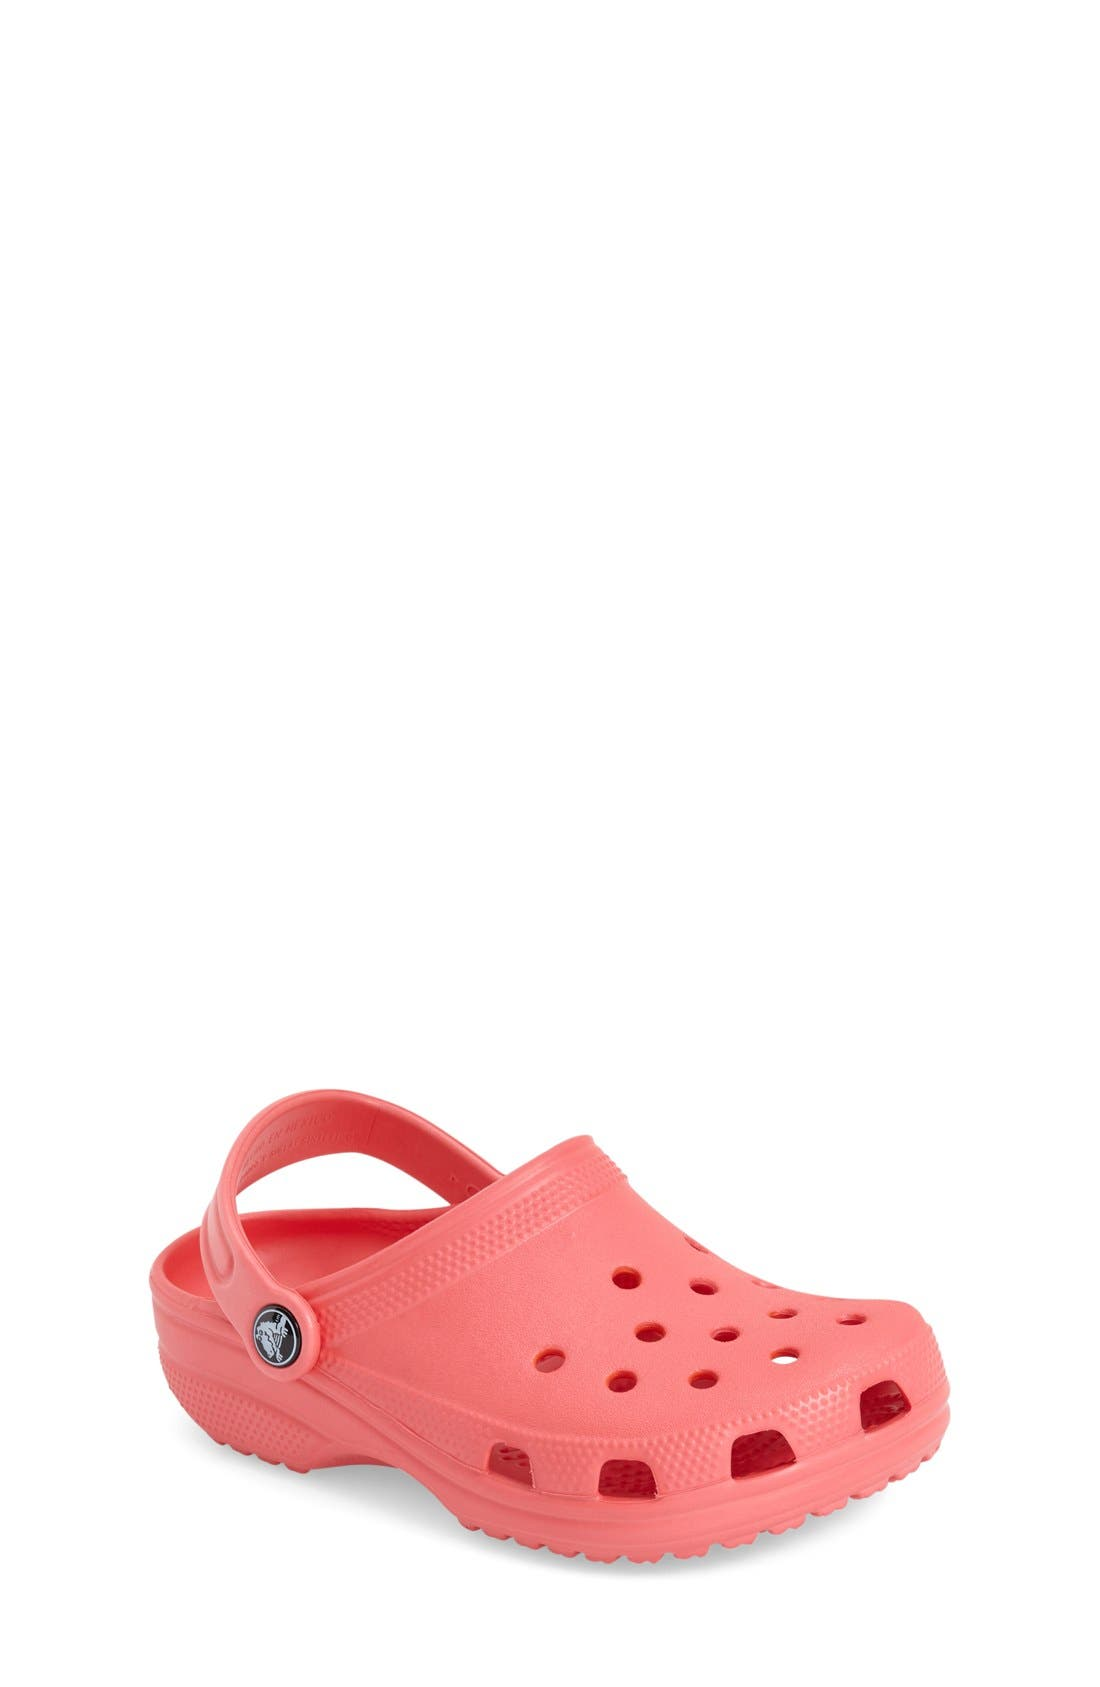 Main Image - CROCS™ 'Classic Clog' Sandal (Walker, Toddler & Little Kid)